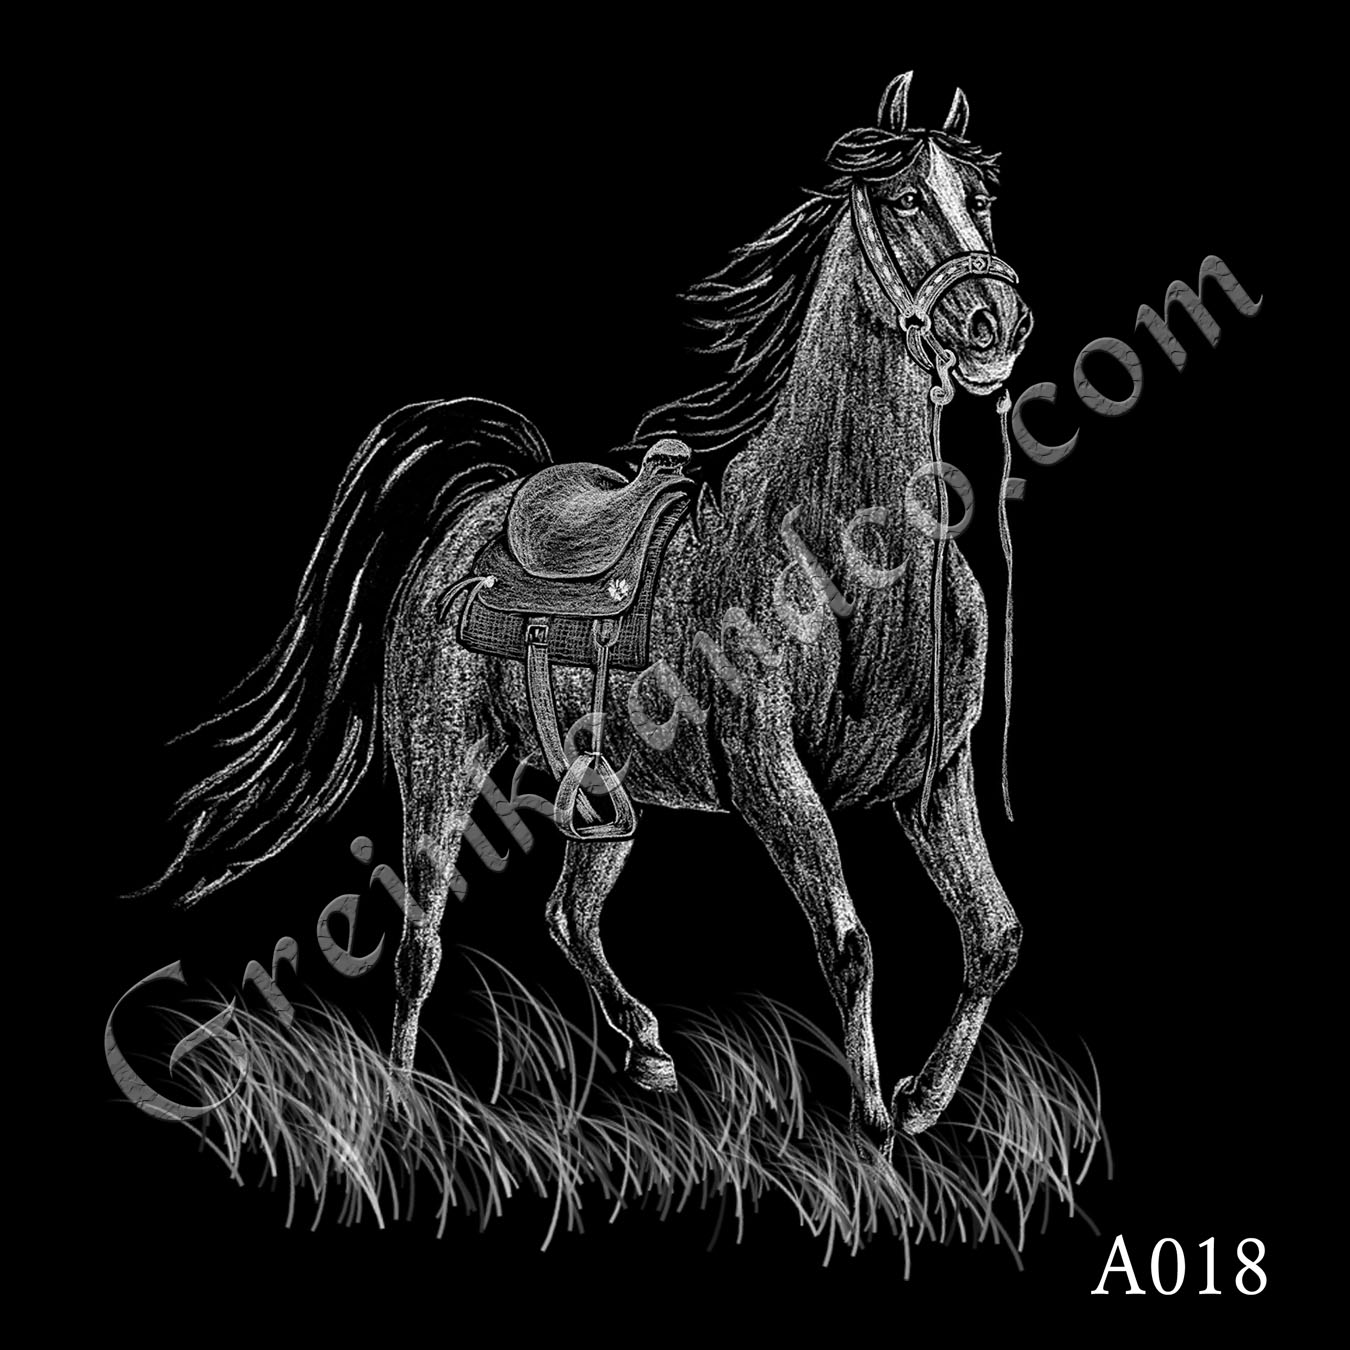 A018 - Horse with Bridle